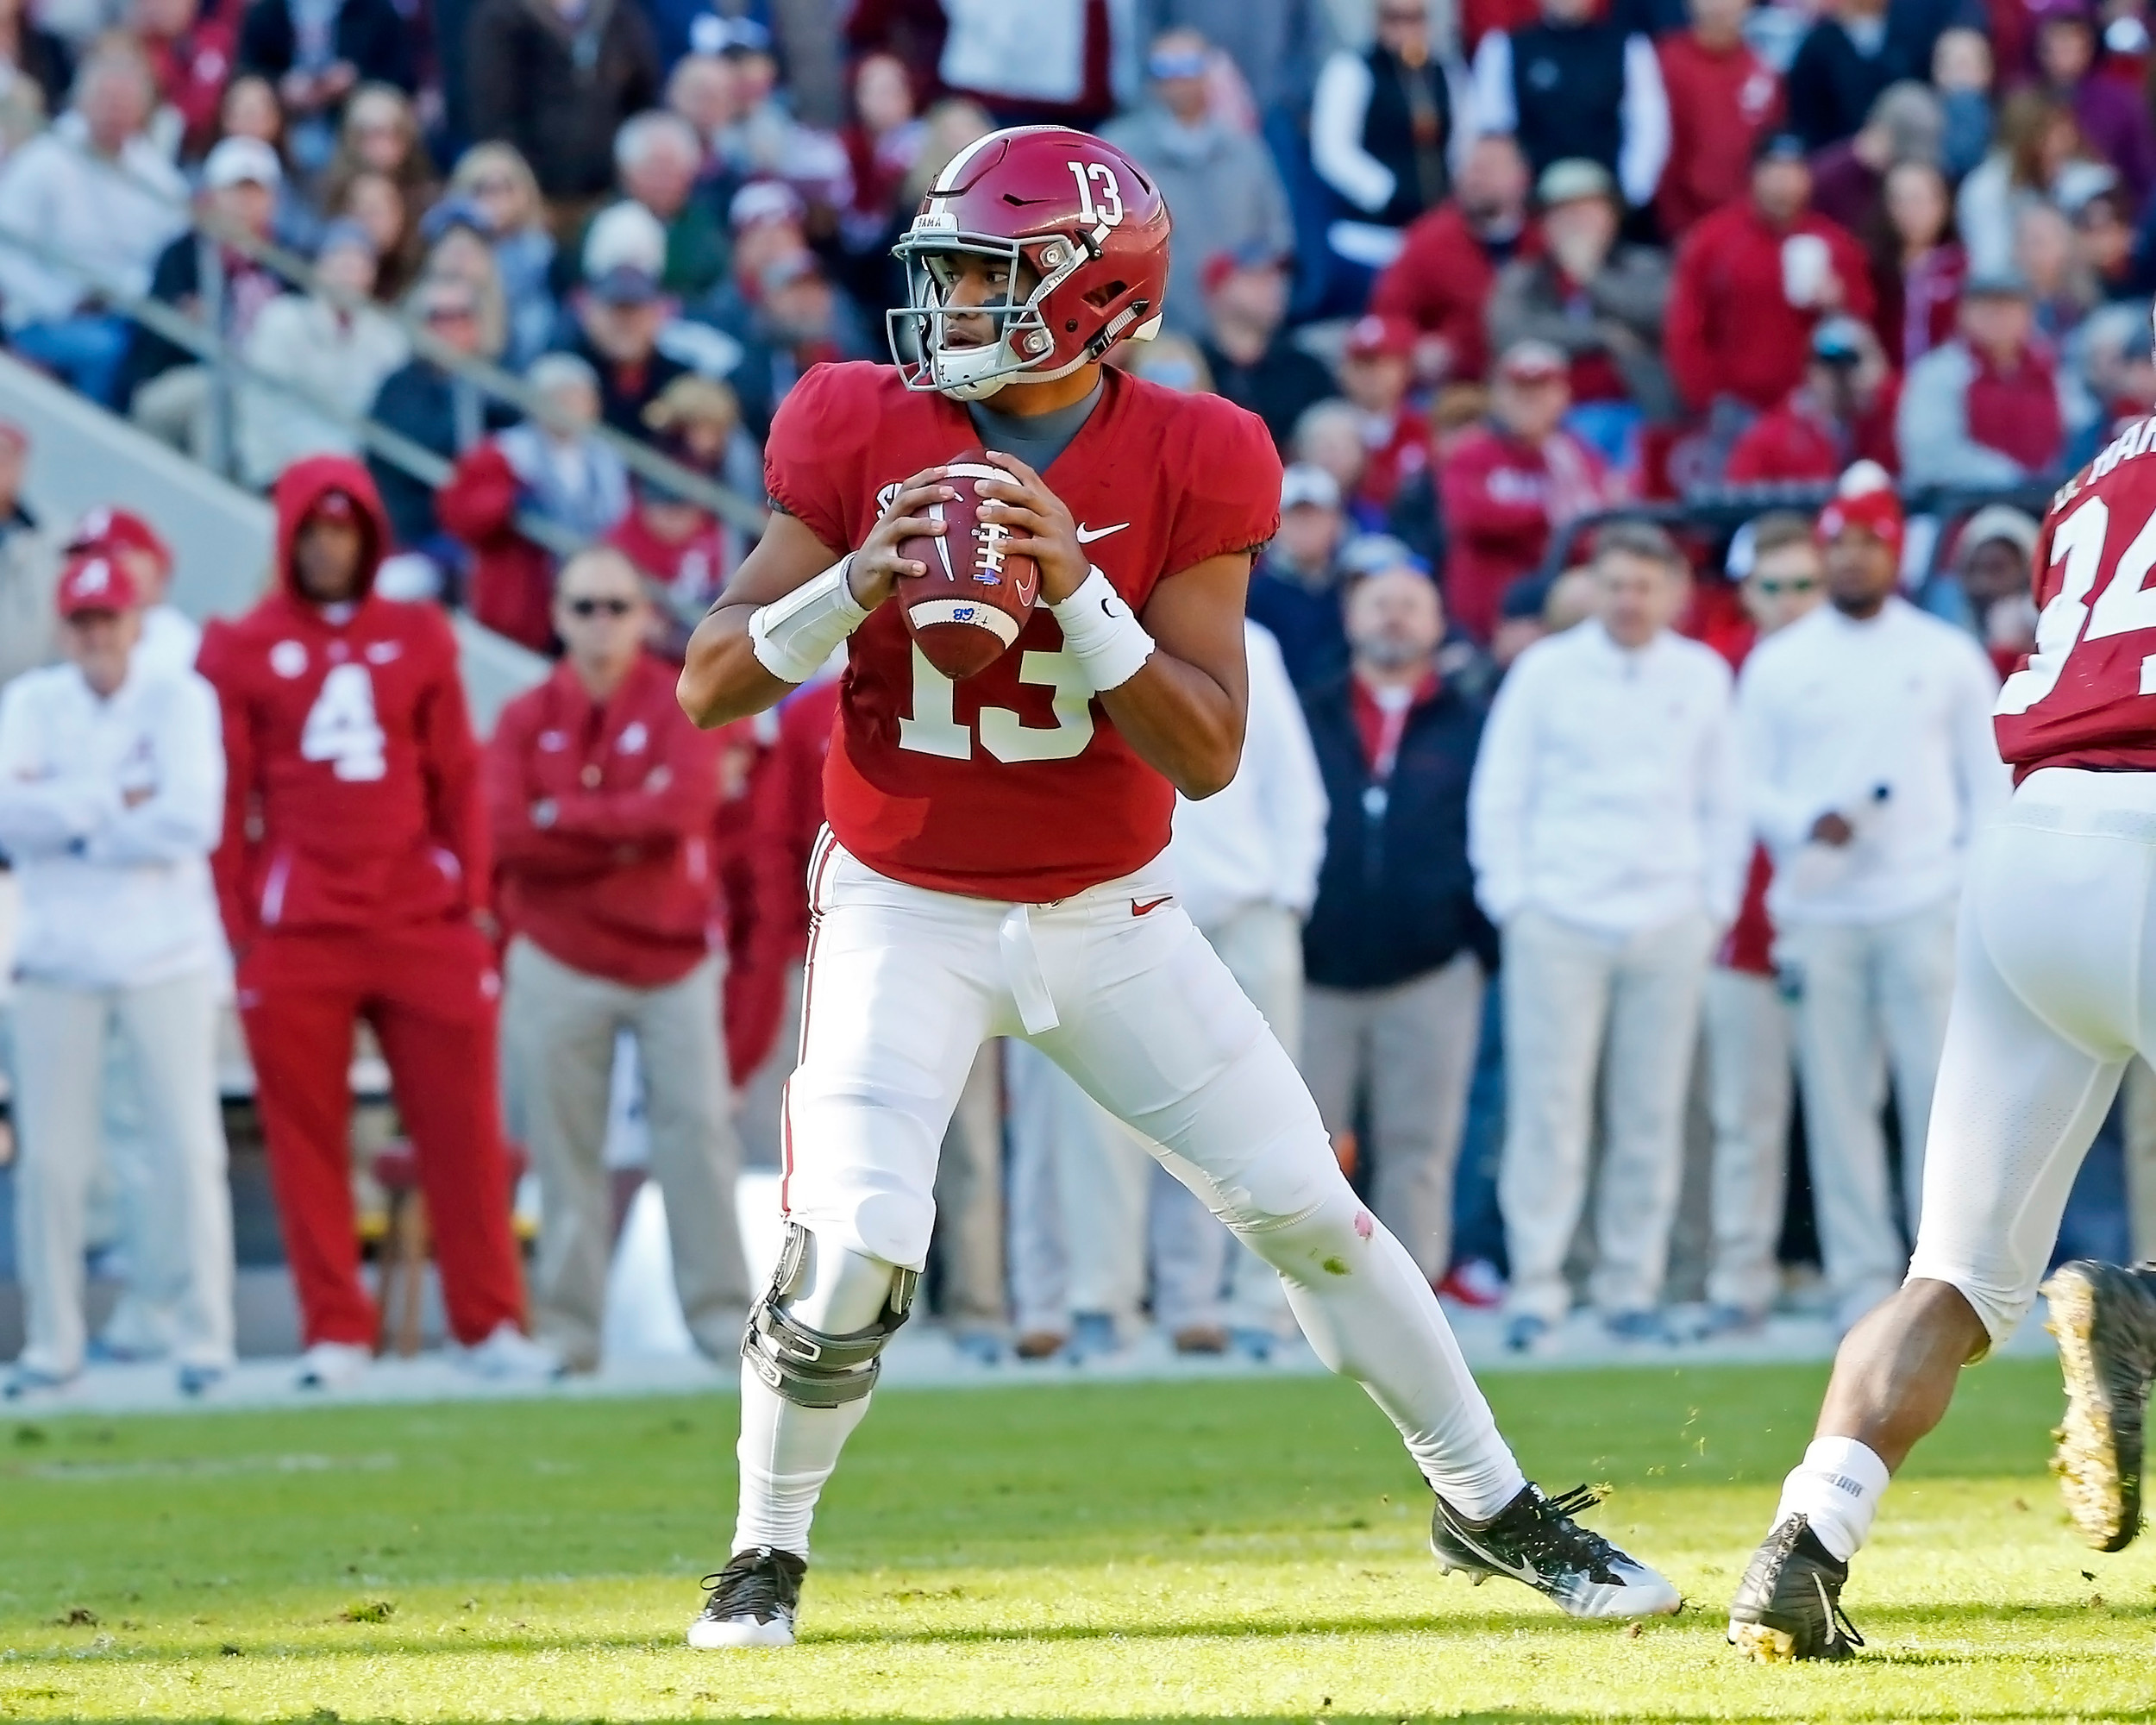 Alabama Crimson Tide quarterback Tua Tagovailoa (13) looks to pass during the game between Mississippi State and the University of Alabama at Bryant-Denny Stadium in Tuscaloosa, Al. Credit: Jason Clark / Daily Mountain Eagle